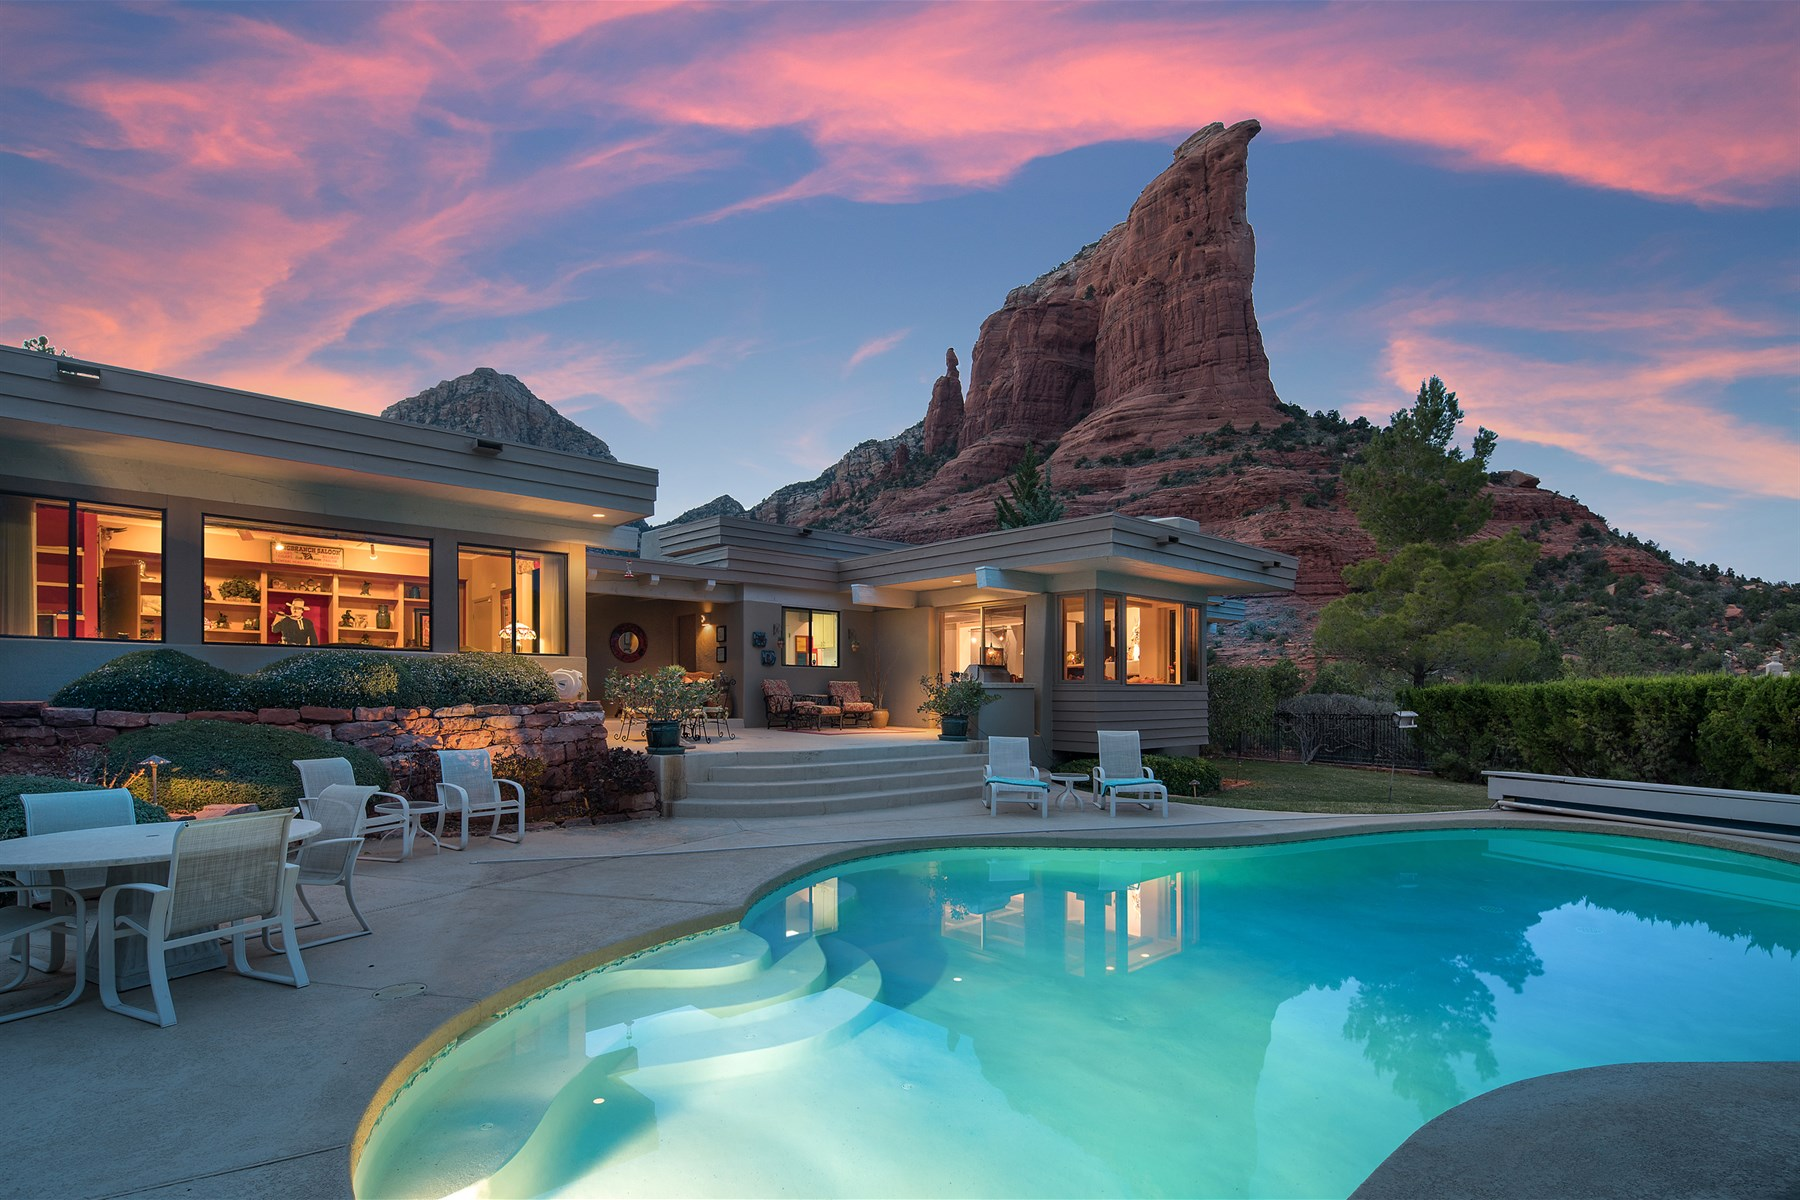 Casa Unifamiliar por un Venta en single-level Frank Lloyd Wright architecturally inspired home 240 Shadow Rock Drive Sedona, Arizona, 86336 Estados Unidos